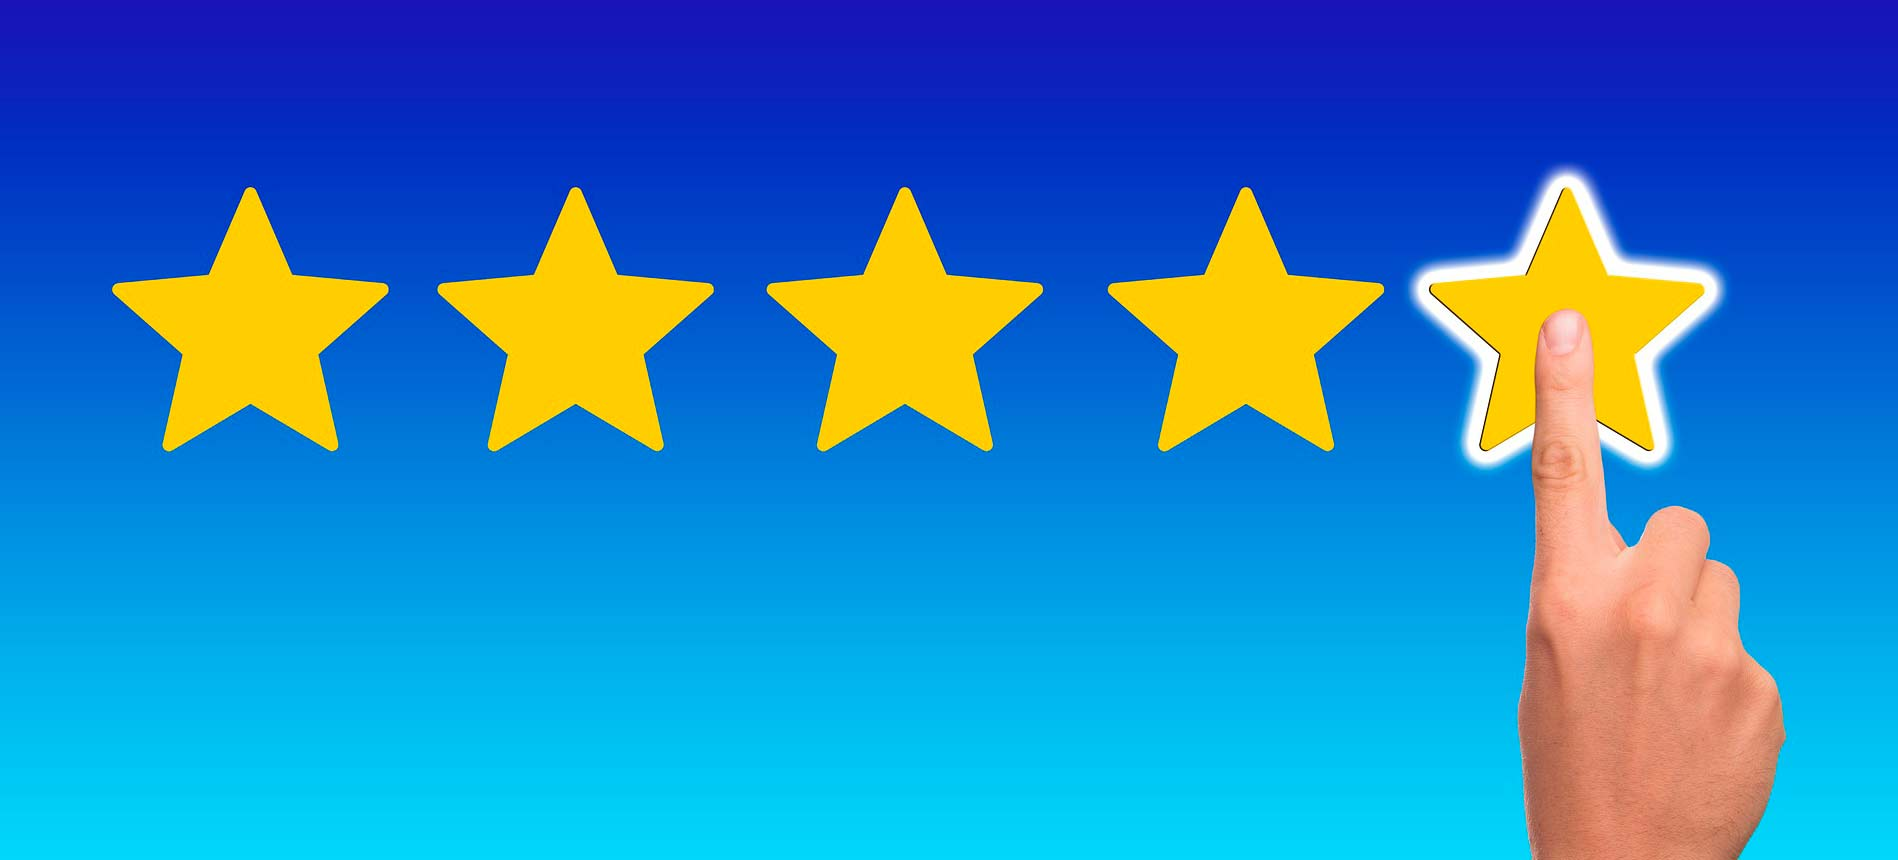 Picture of hand pressing stars for rating